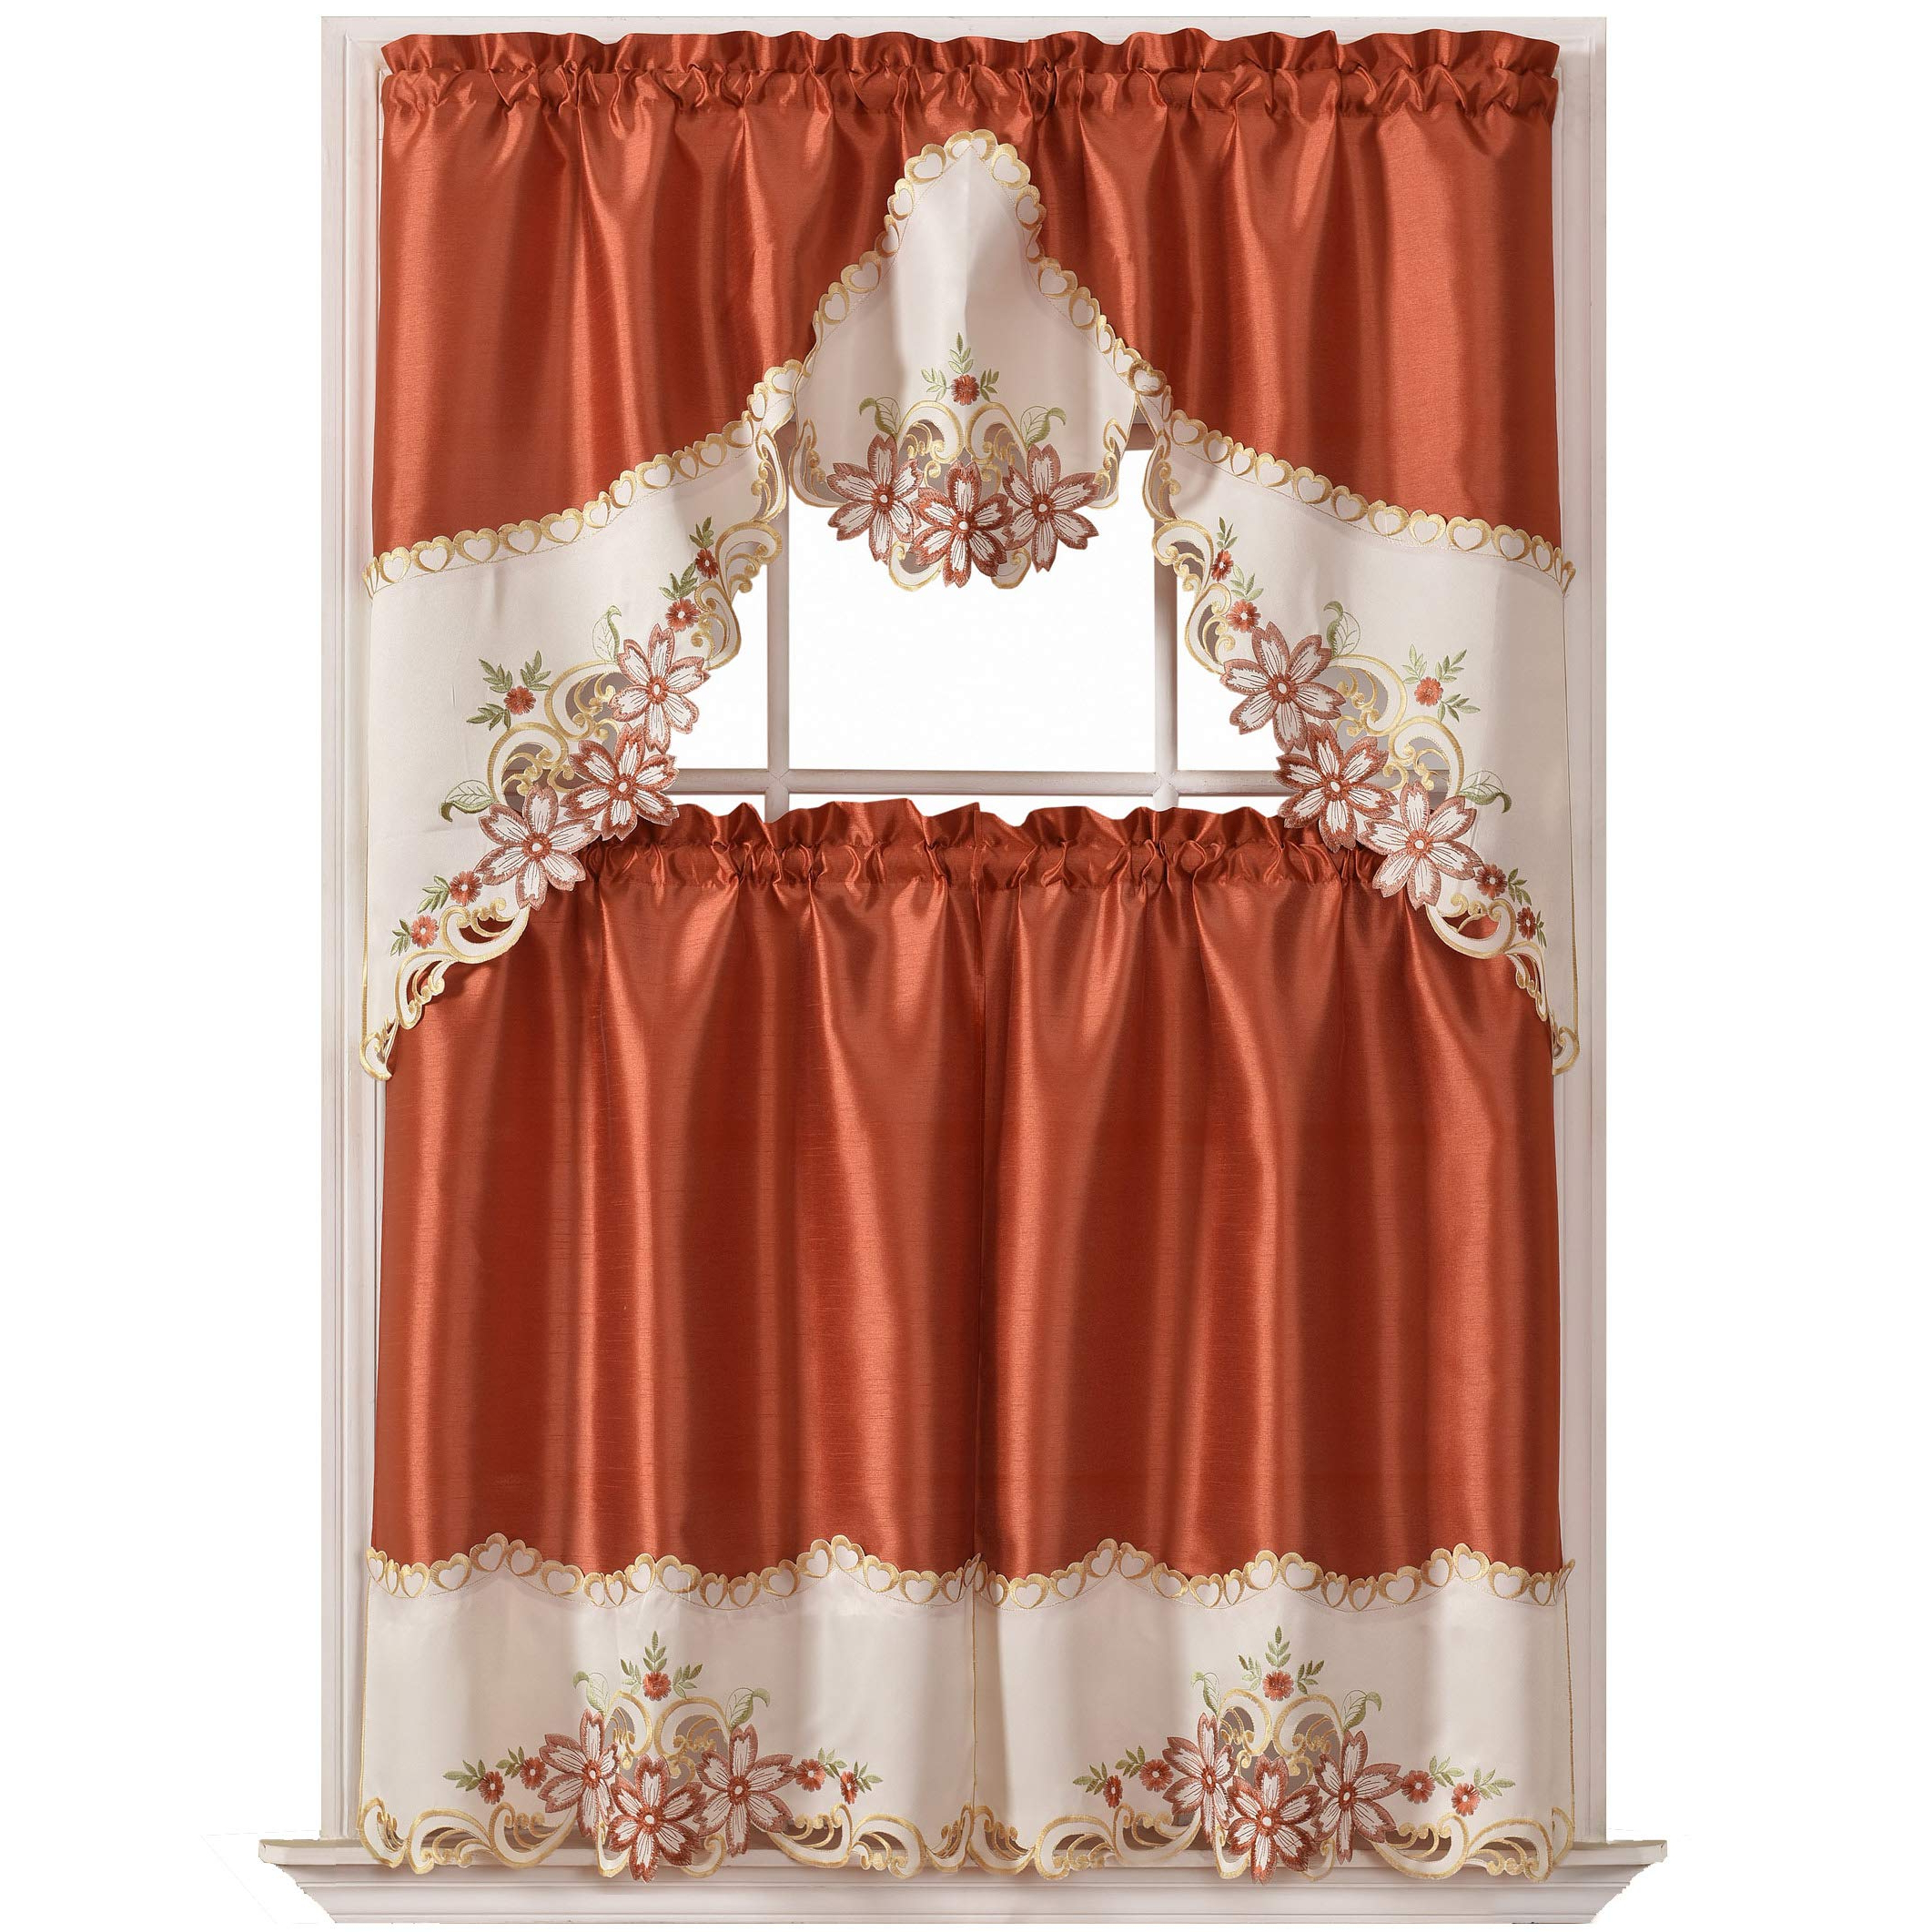 Details About Gohd Arch Floral Kitchen Curtain Set/swag Valance Tier Set (View 10 of 20)